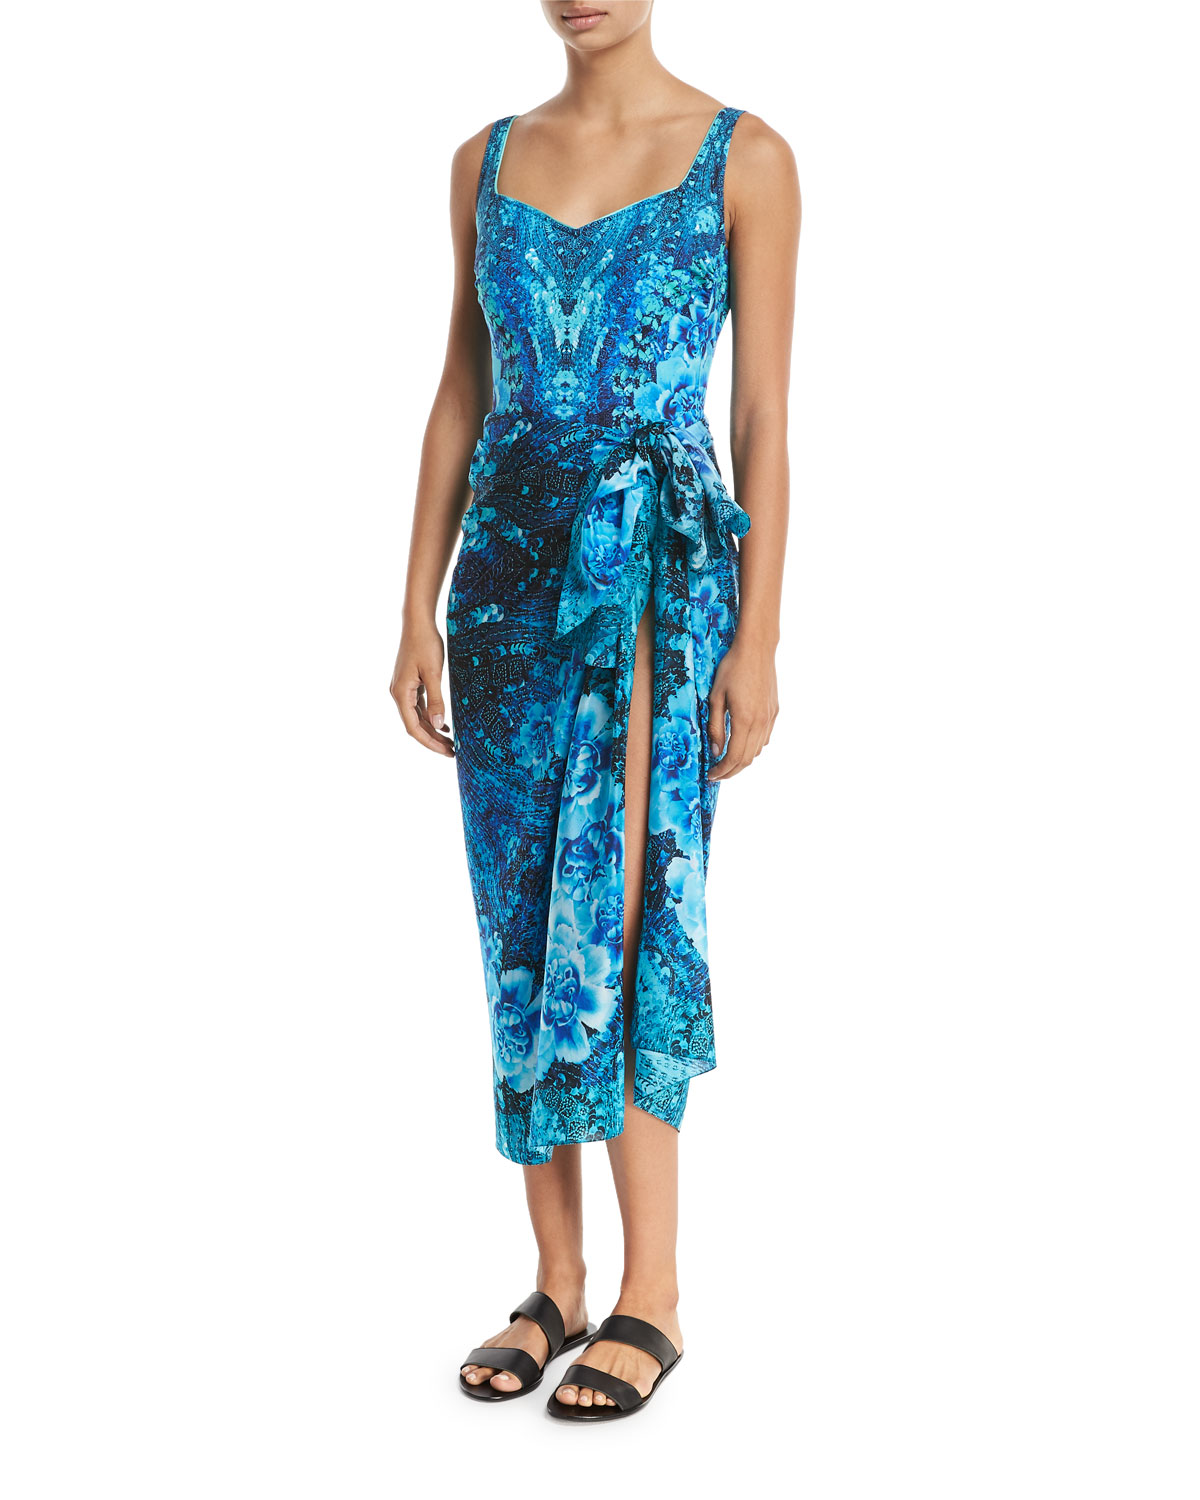 Emerald Isle Silk Pareo Coverup, One Size